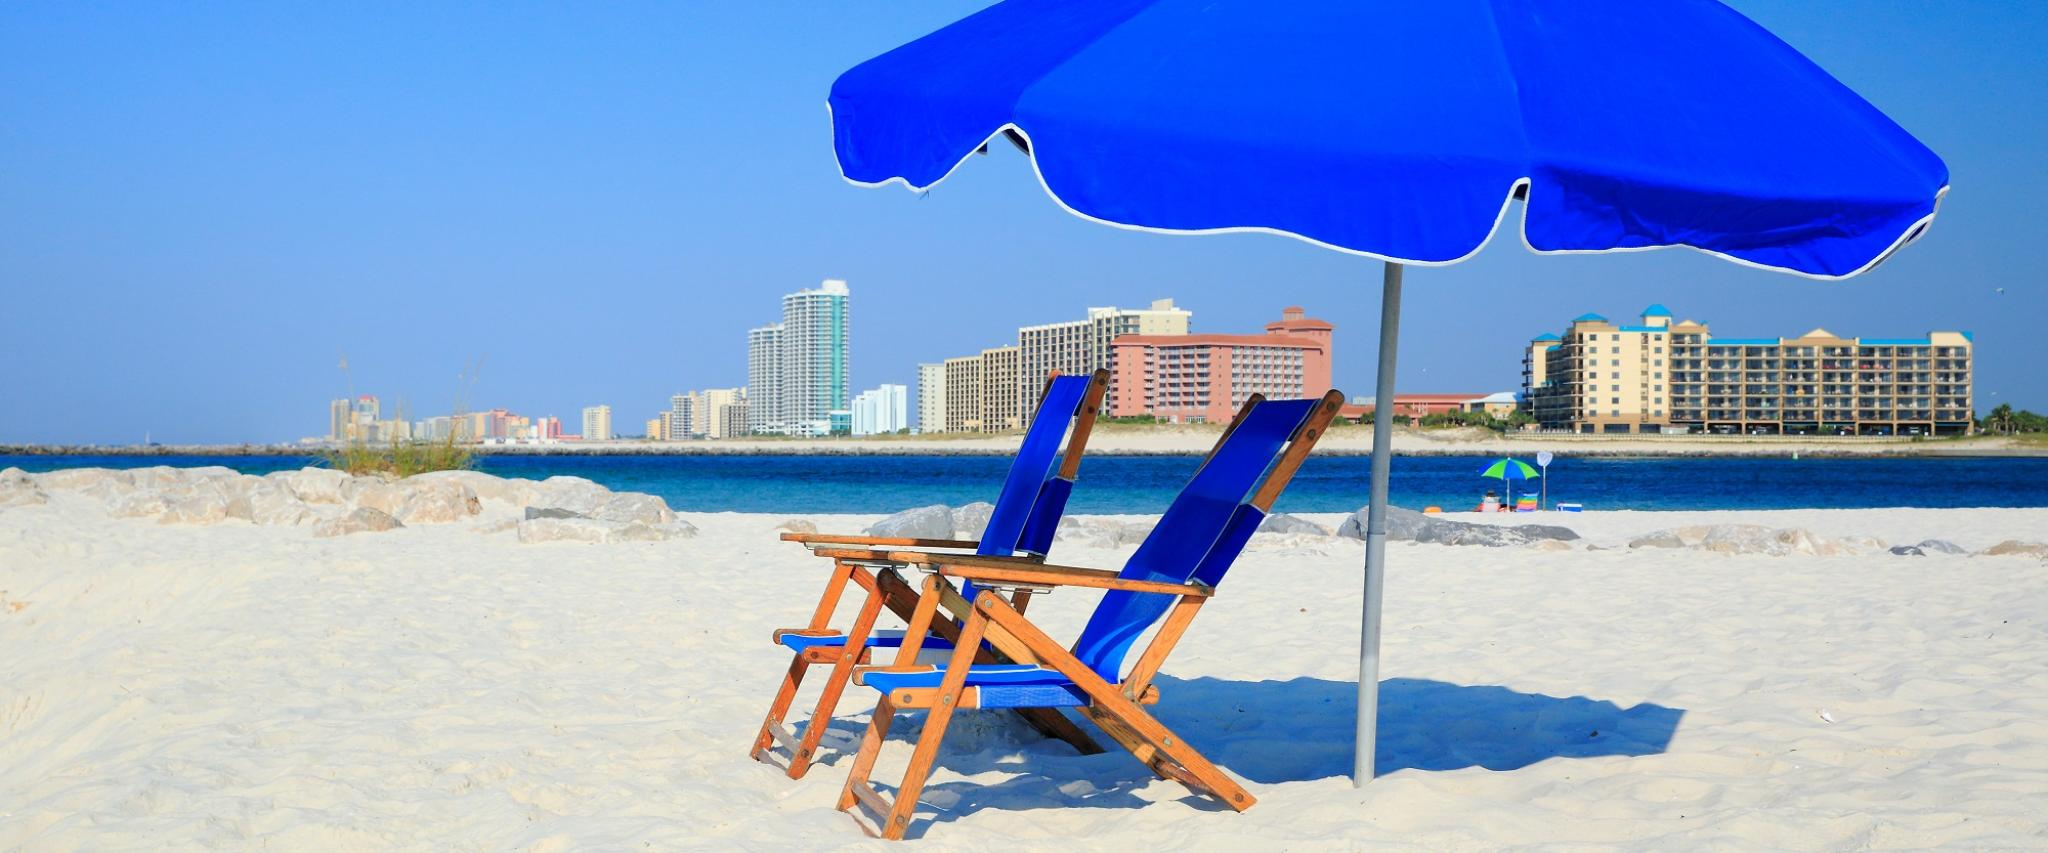 Relax beneath an umbrella this Labor Day Weekend in Gulf Shores and Orange Beach